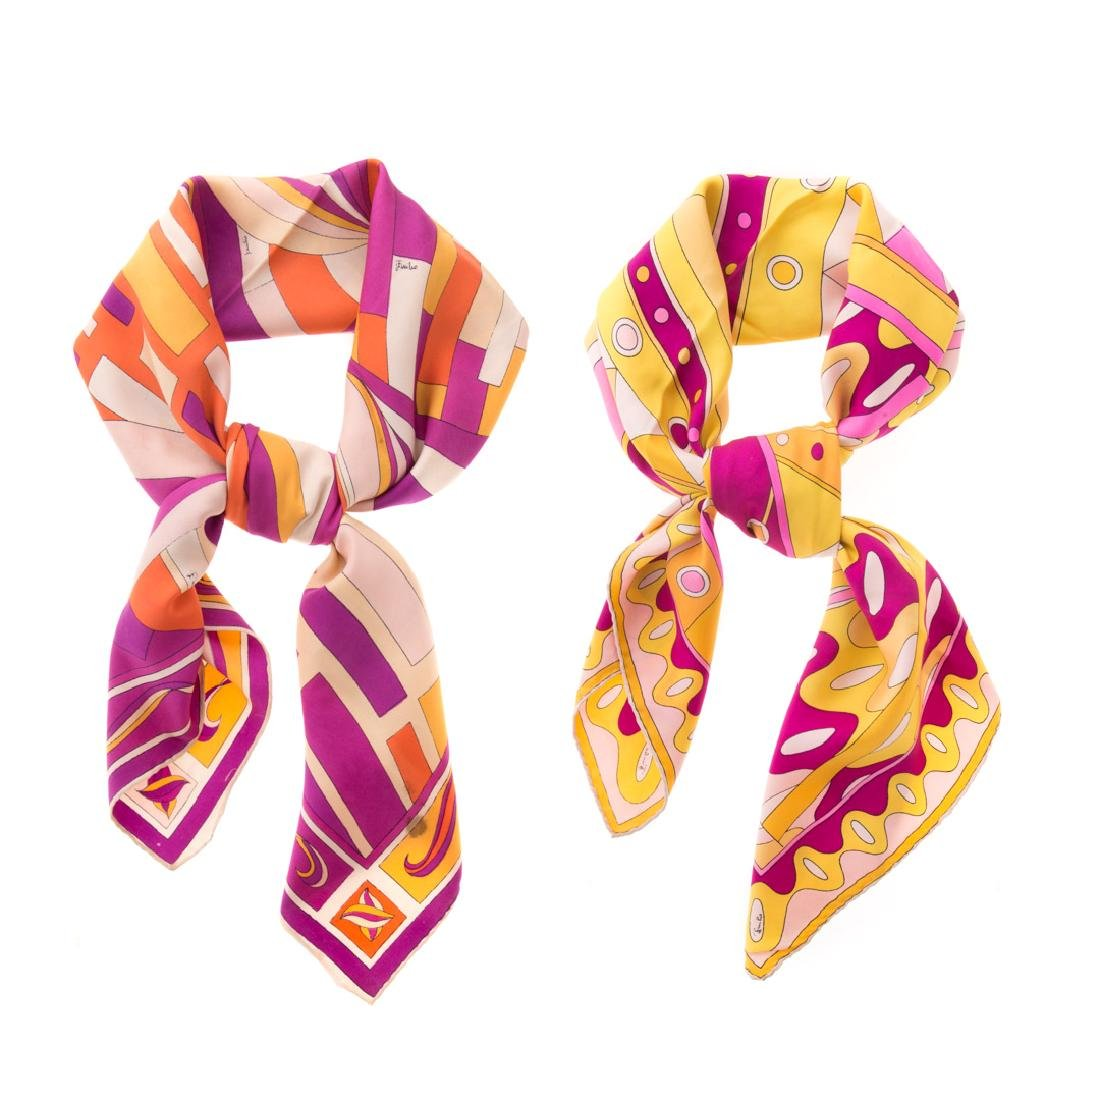 Two Emilio Pucci Printed Silk Scarves